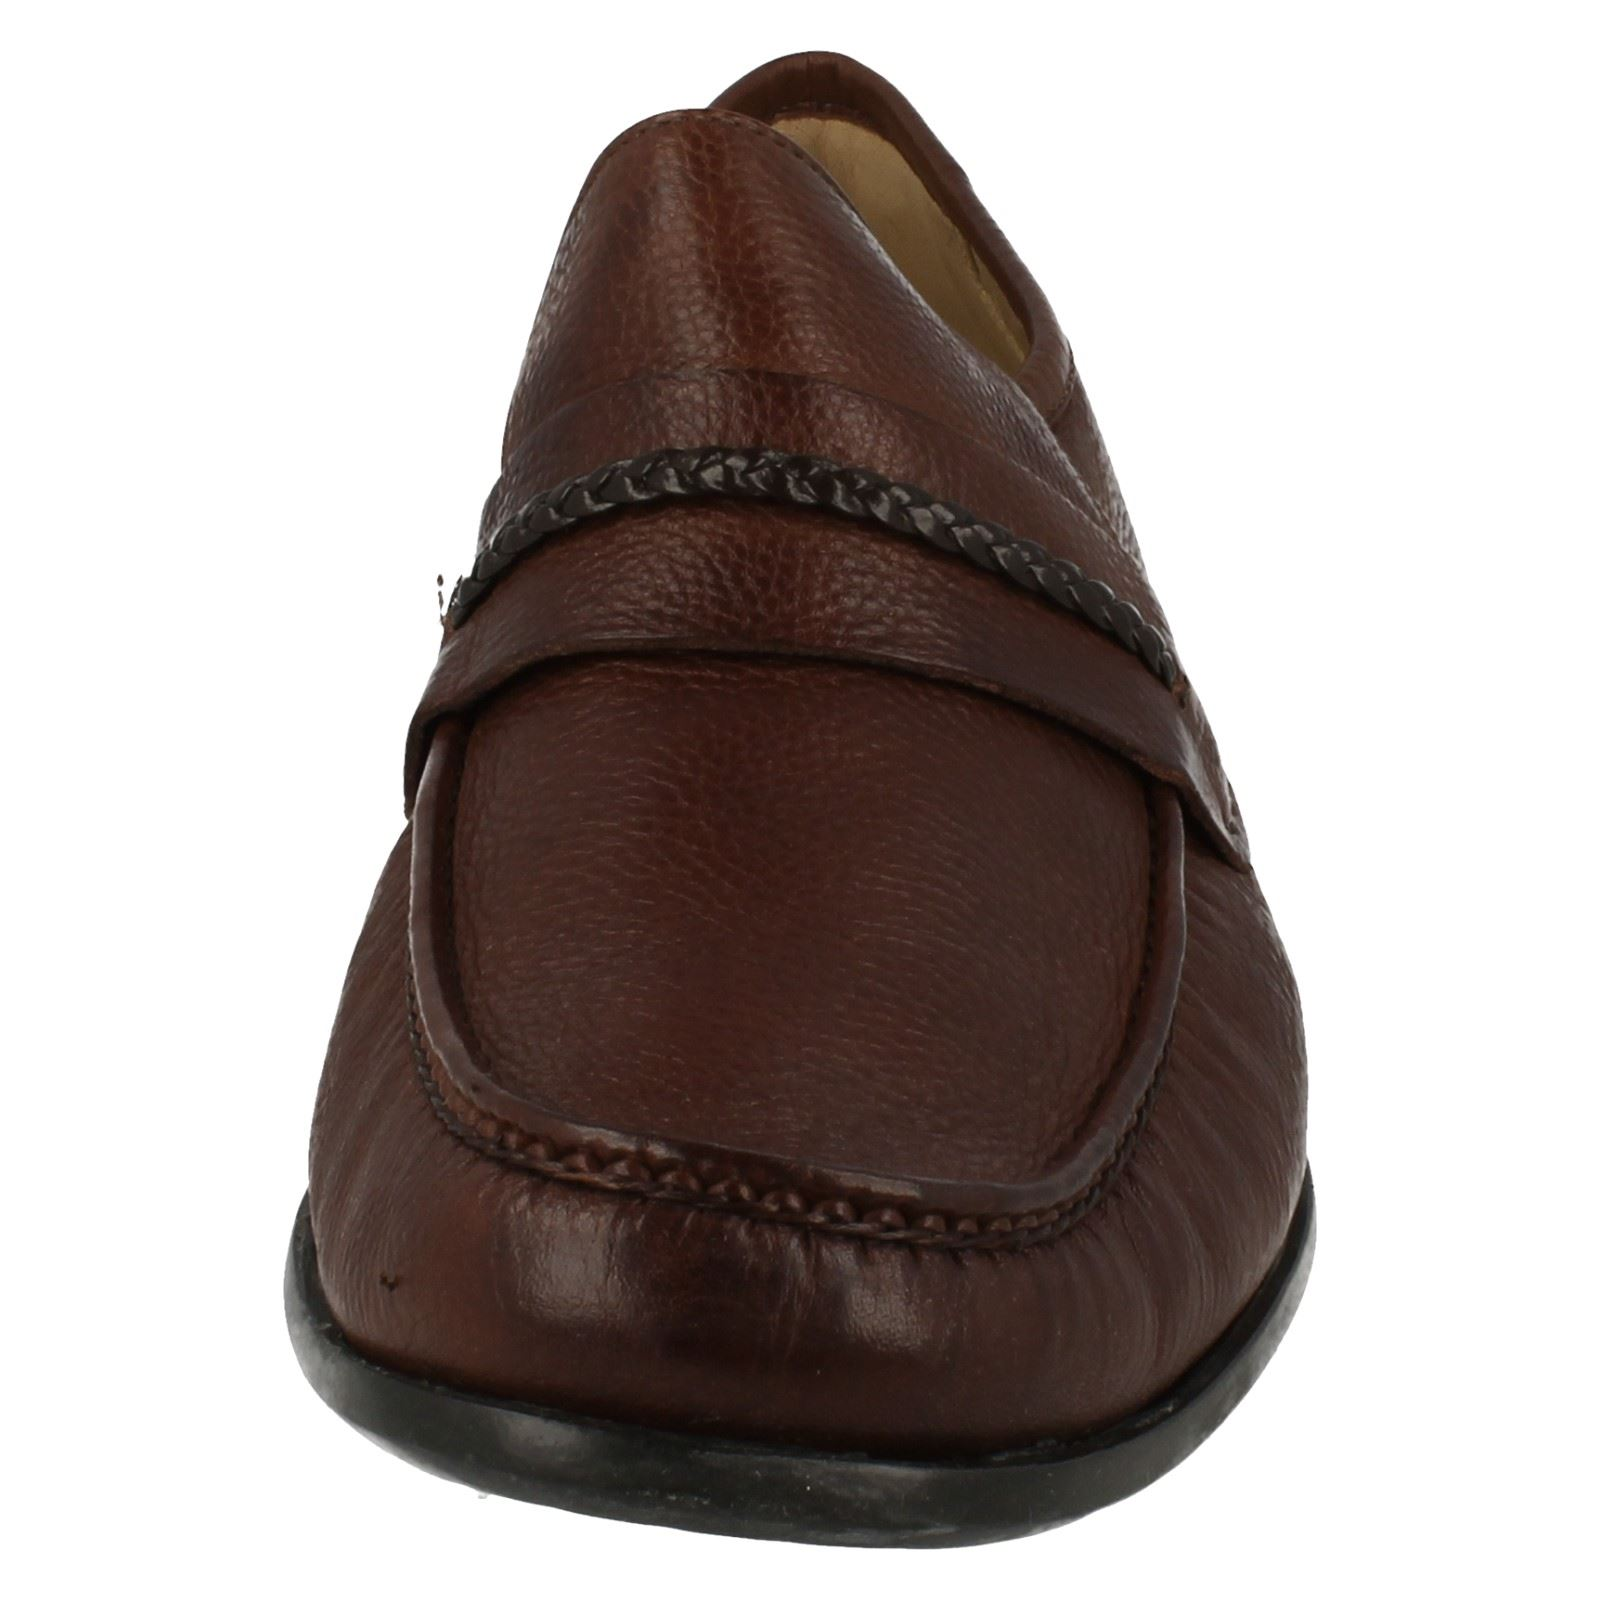 Anatomic Uomo Anatomic  Gaspar Smart Moccasin Schuhes d3c5c0